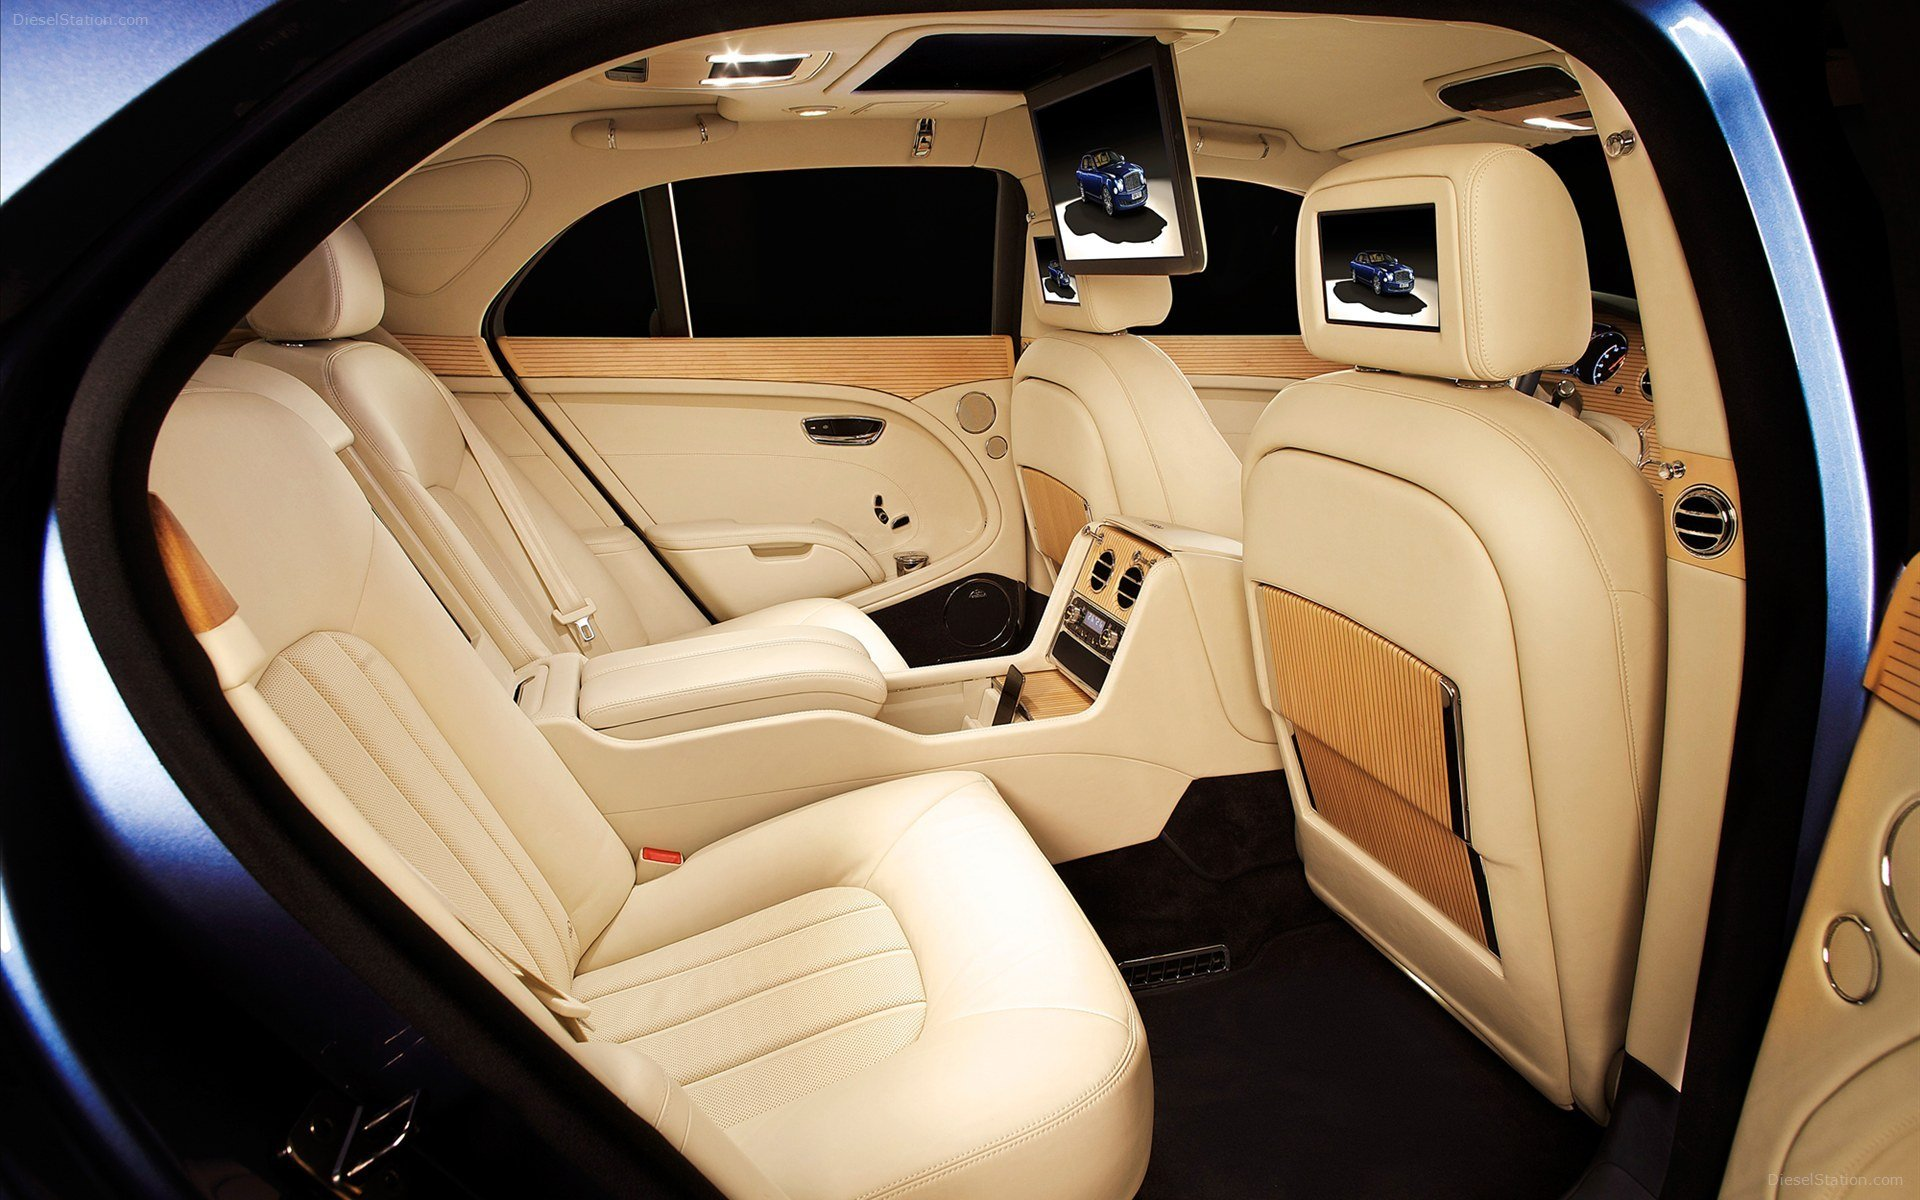 Latest Bentley Mulsanne Executive Interior 2013 Widescreen Exotic Free Download